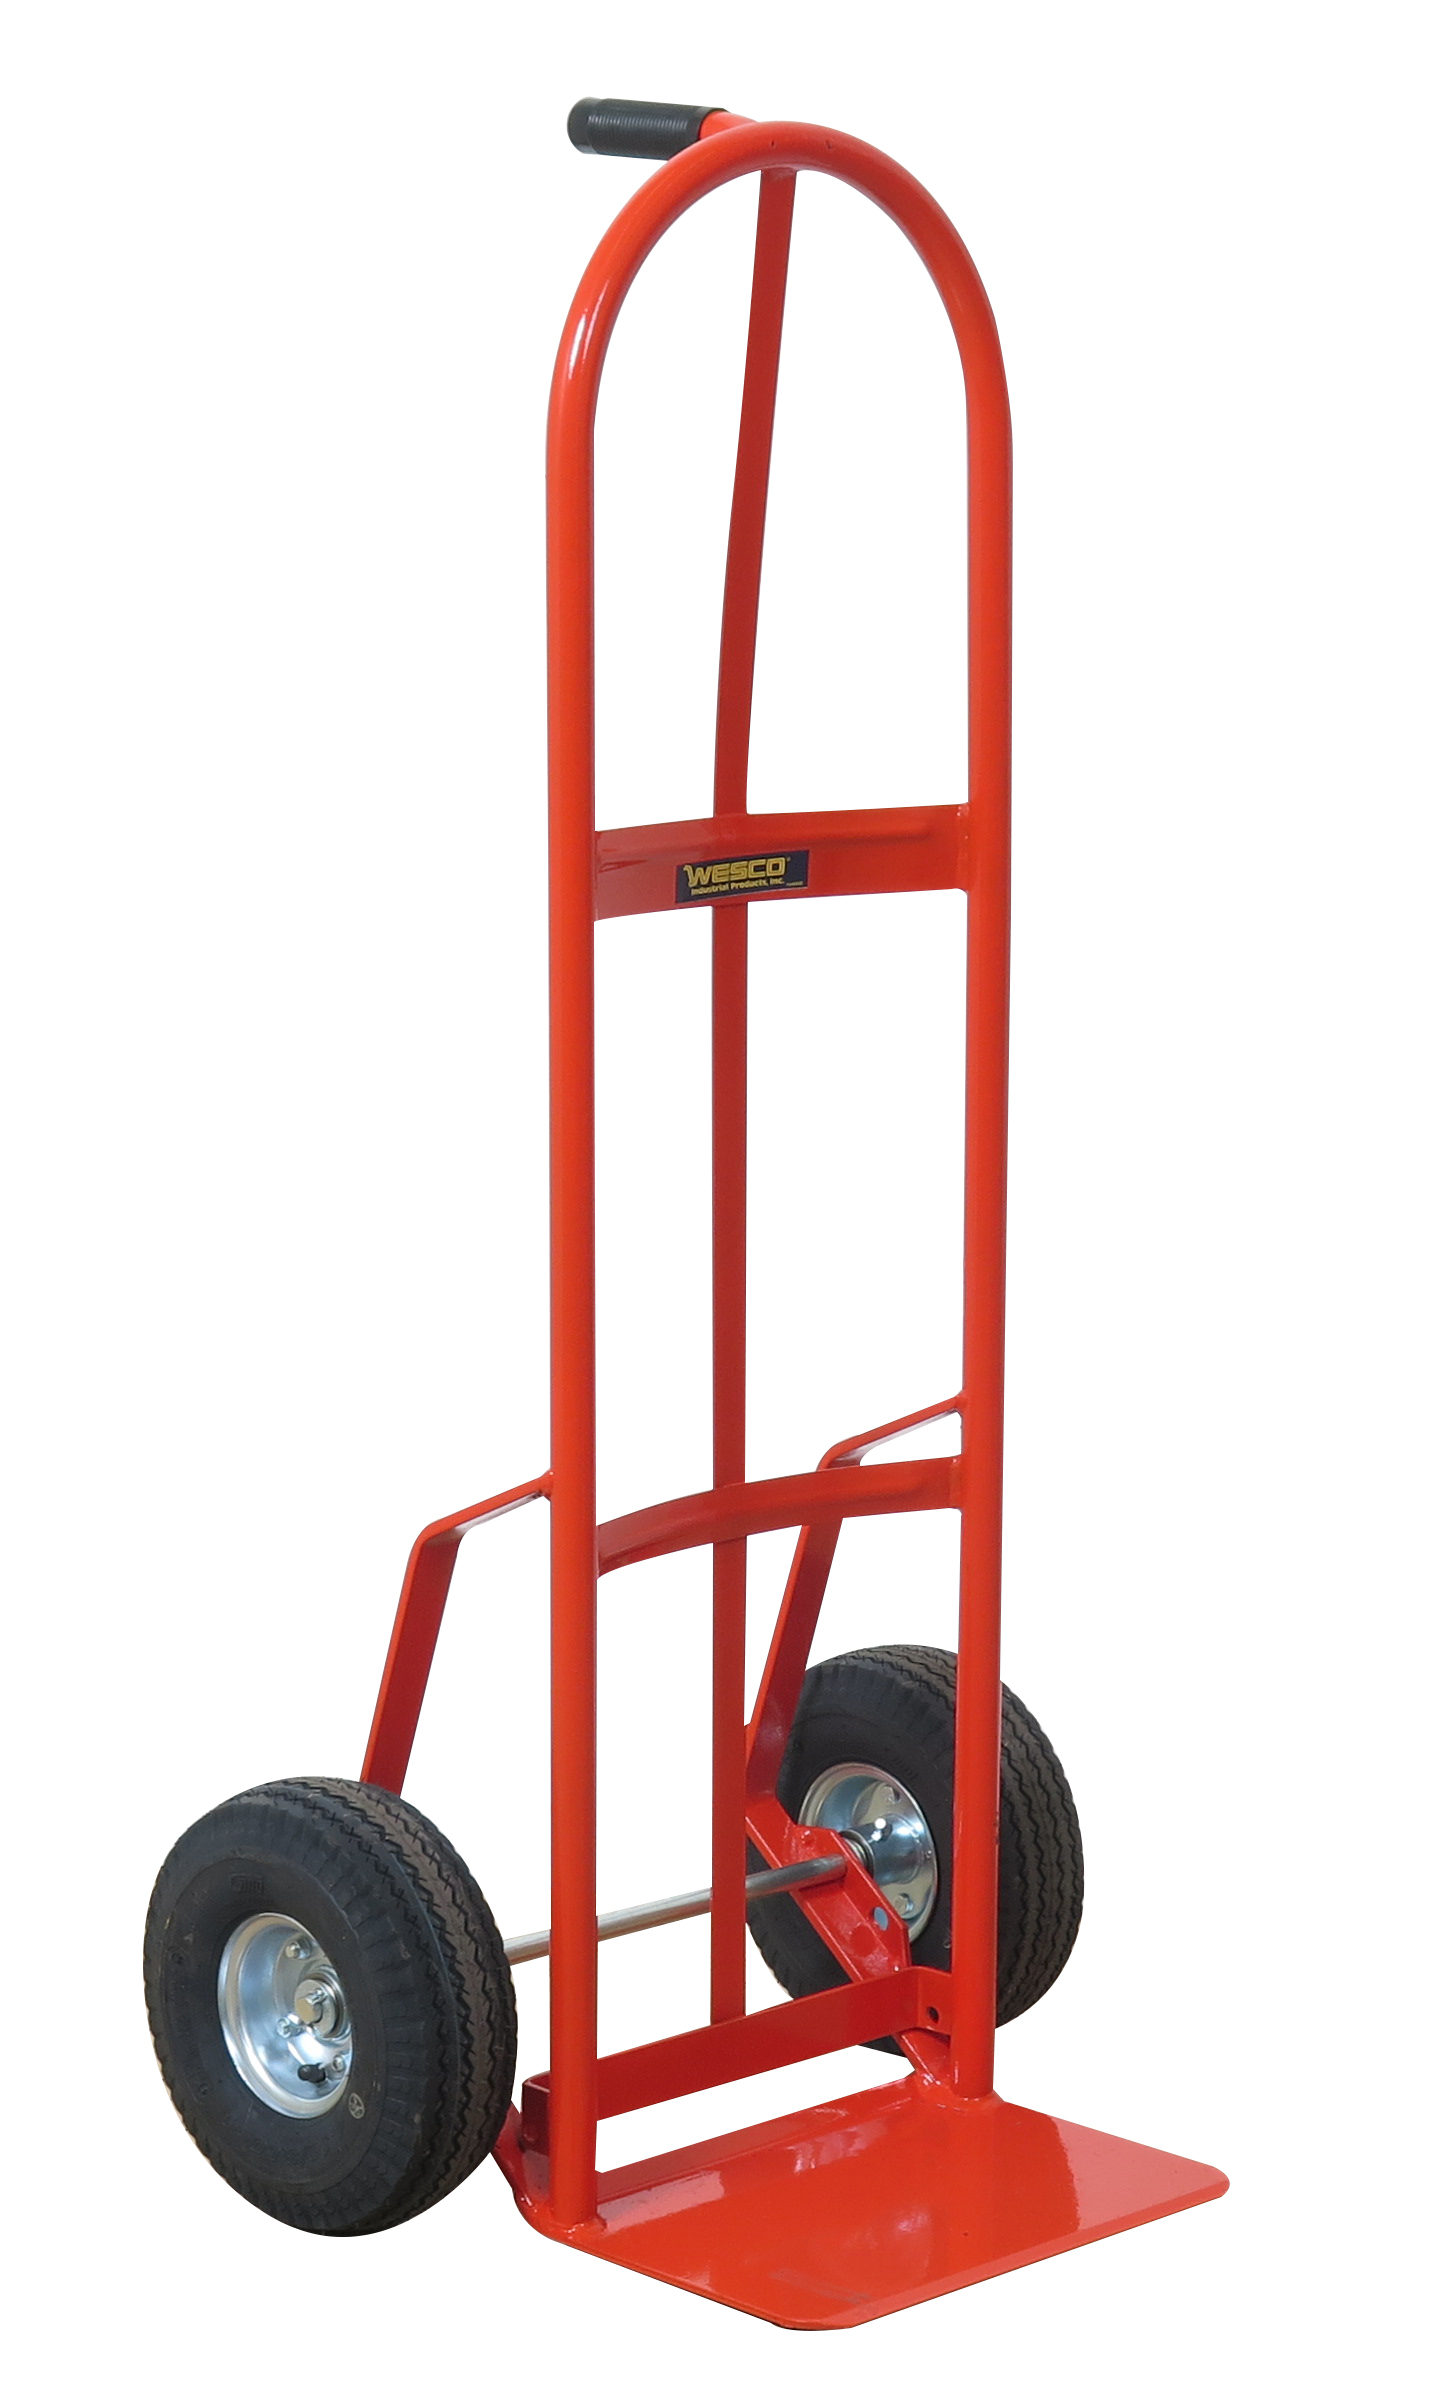 Wesco Hand Truck with a Single Pin Handle, Model 210012